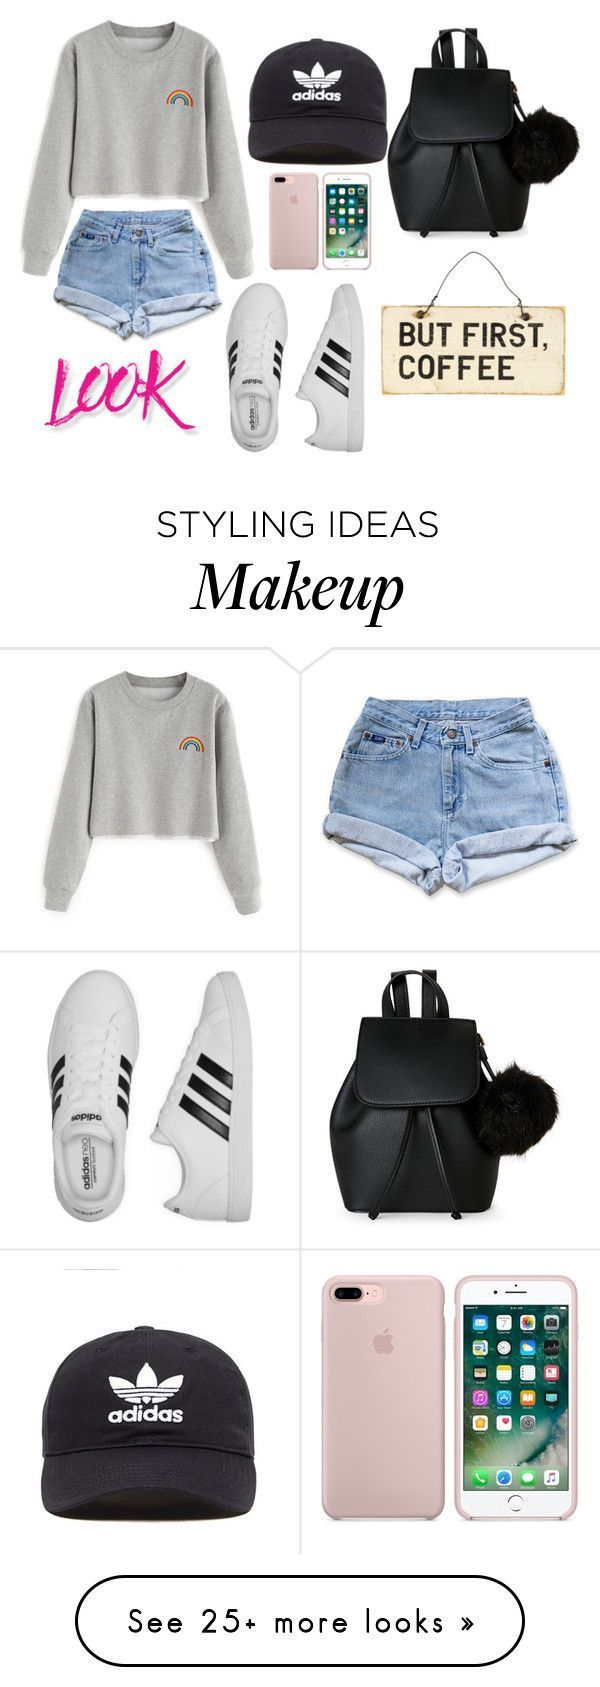 """subtitle, everyday look with an adidas hat for a lazy hair day!"" by soph1designer on Polyvore featuring Levi's, adidas, adidas Originals, NYX and"